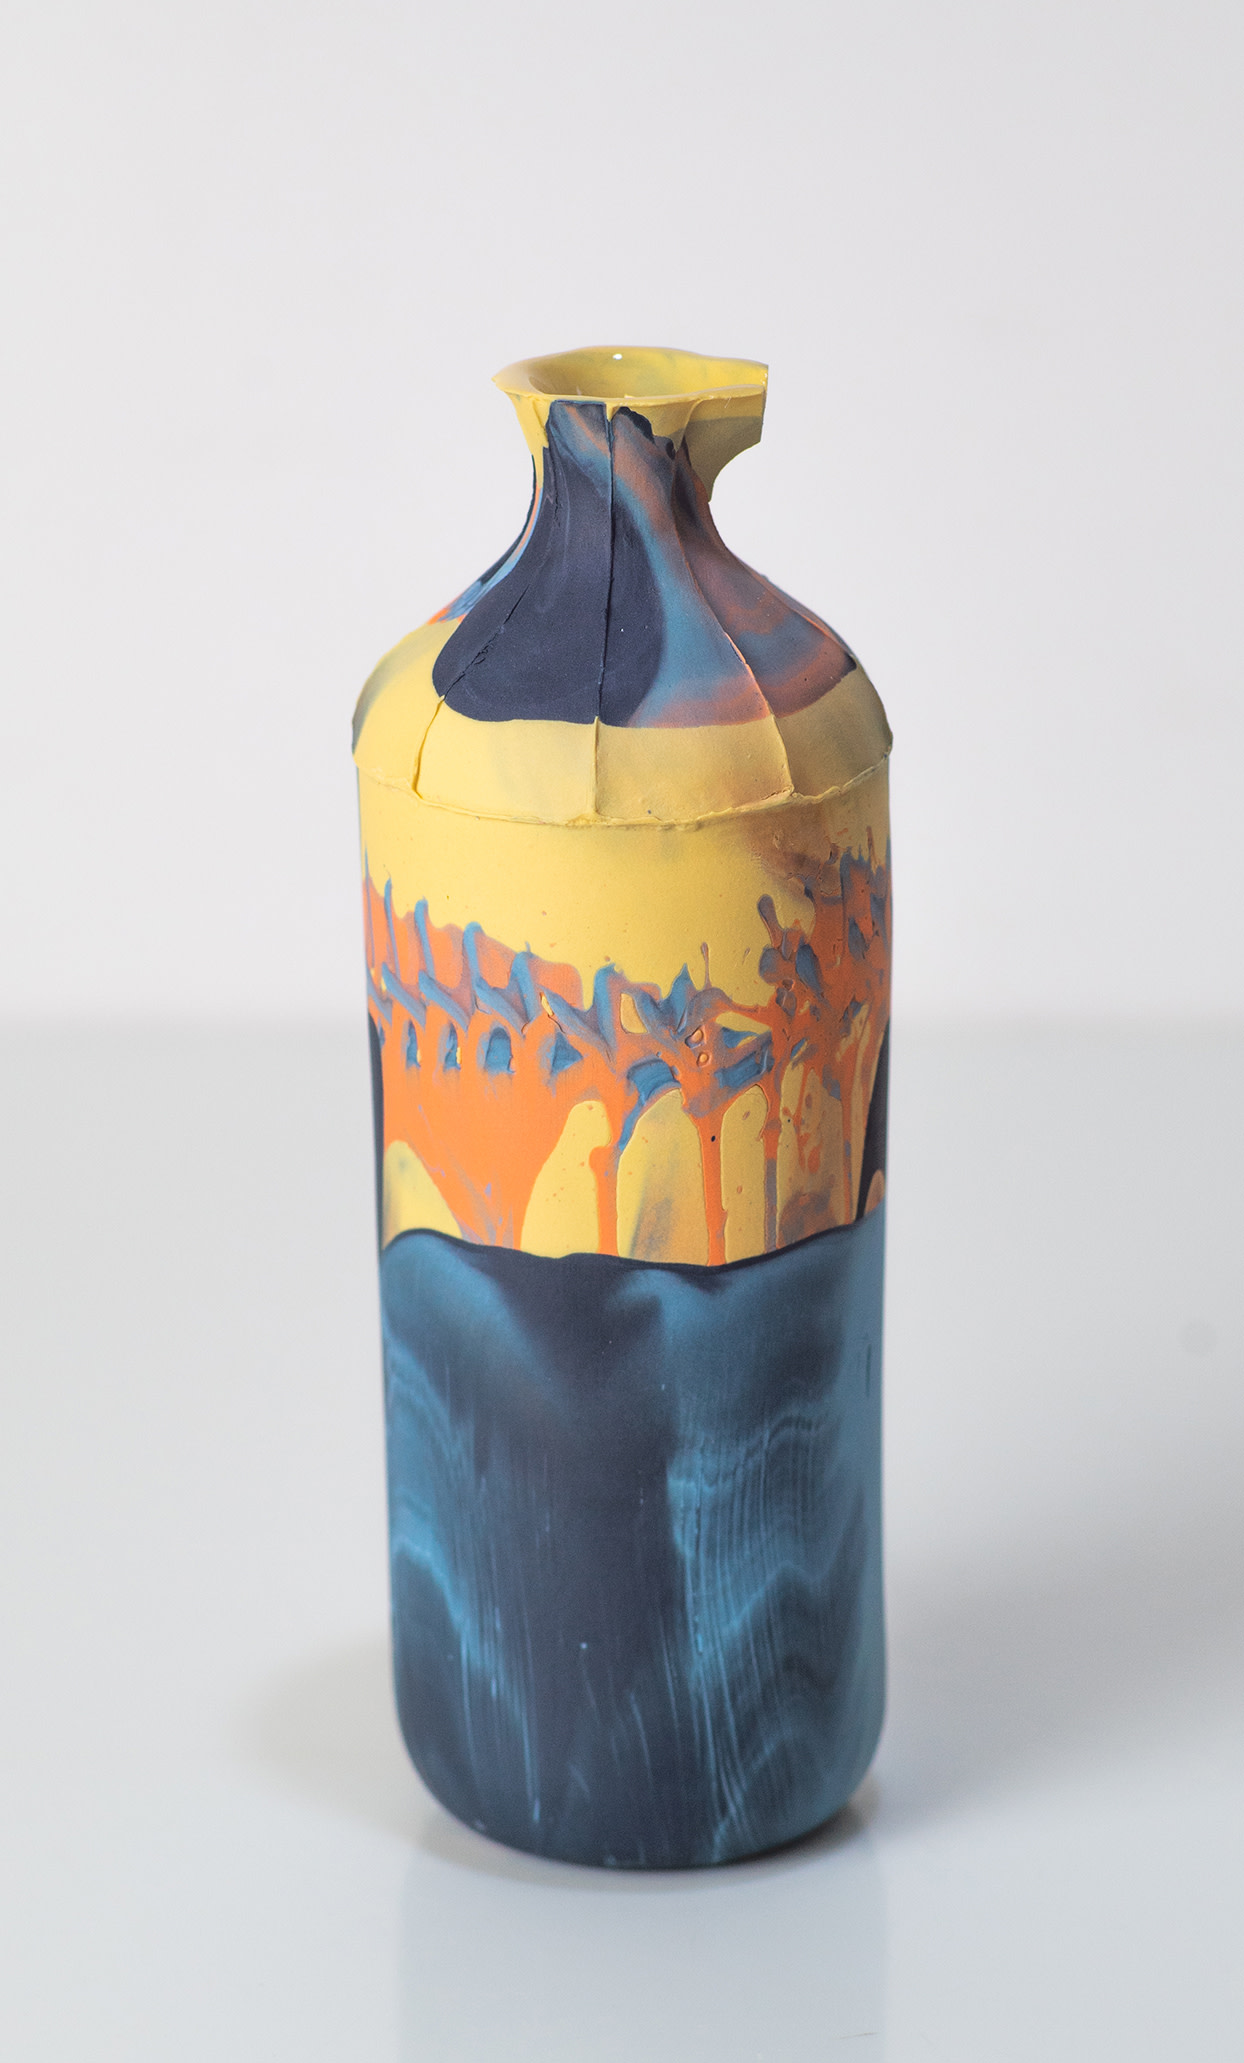 <span class=&#34;link fancybox-details-link&#34;><a href=&#34;/artists/219-james-pegg/works/6082-james-pegg-tall-bottle-2019/&#34;>View Detail Page</a></span><div class=&#34;artist&#34;><strong>James Pegg</strong></div> <div class=&#34;title&#34;><em>Tall Bottle</em>, 2019</div> <div class=&#34;medium&#34;>action-cast stained porcelain with glazed interior</div> <div class=&#34;dimensions&#34;>h 17cm, dia 6 cm</div><div class=&#34;price&#34;>£120.00</div><div class=&#34;copyright_line&#34;>OwnArt: £ 12 x 10 Months, 0% APR </div>